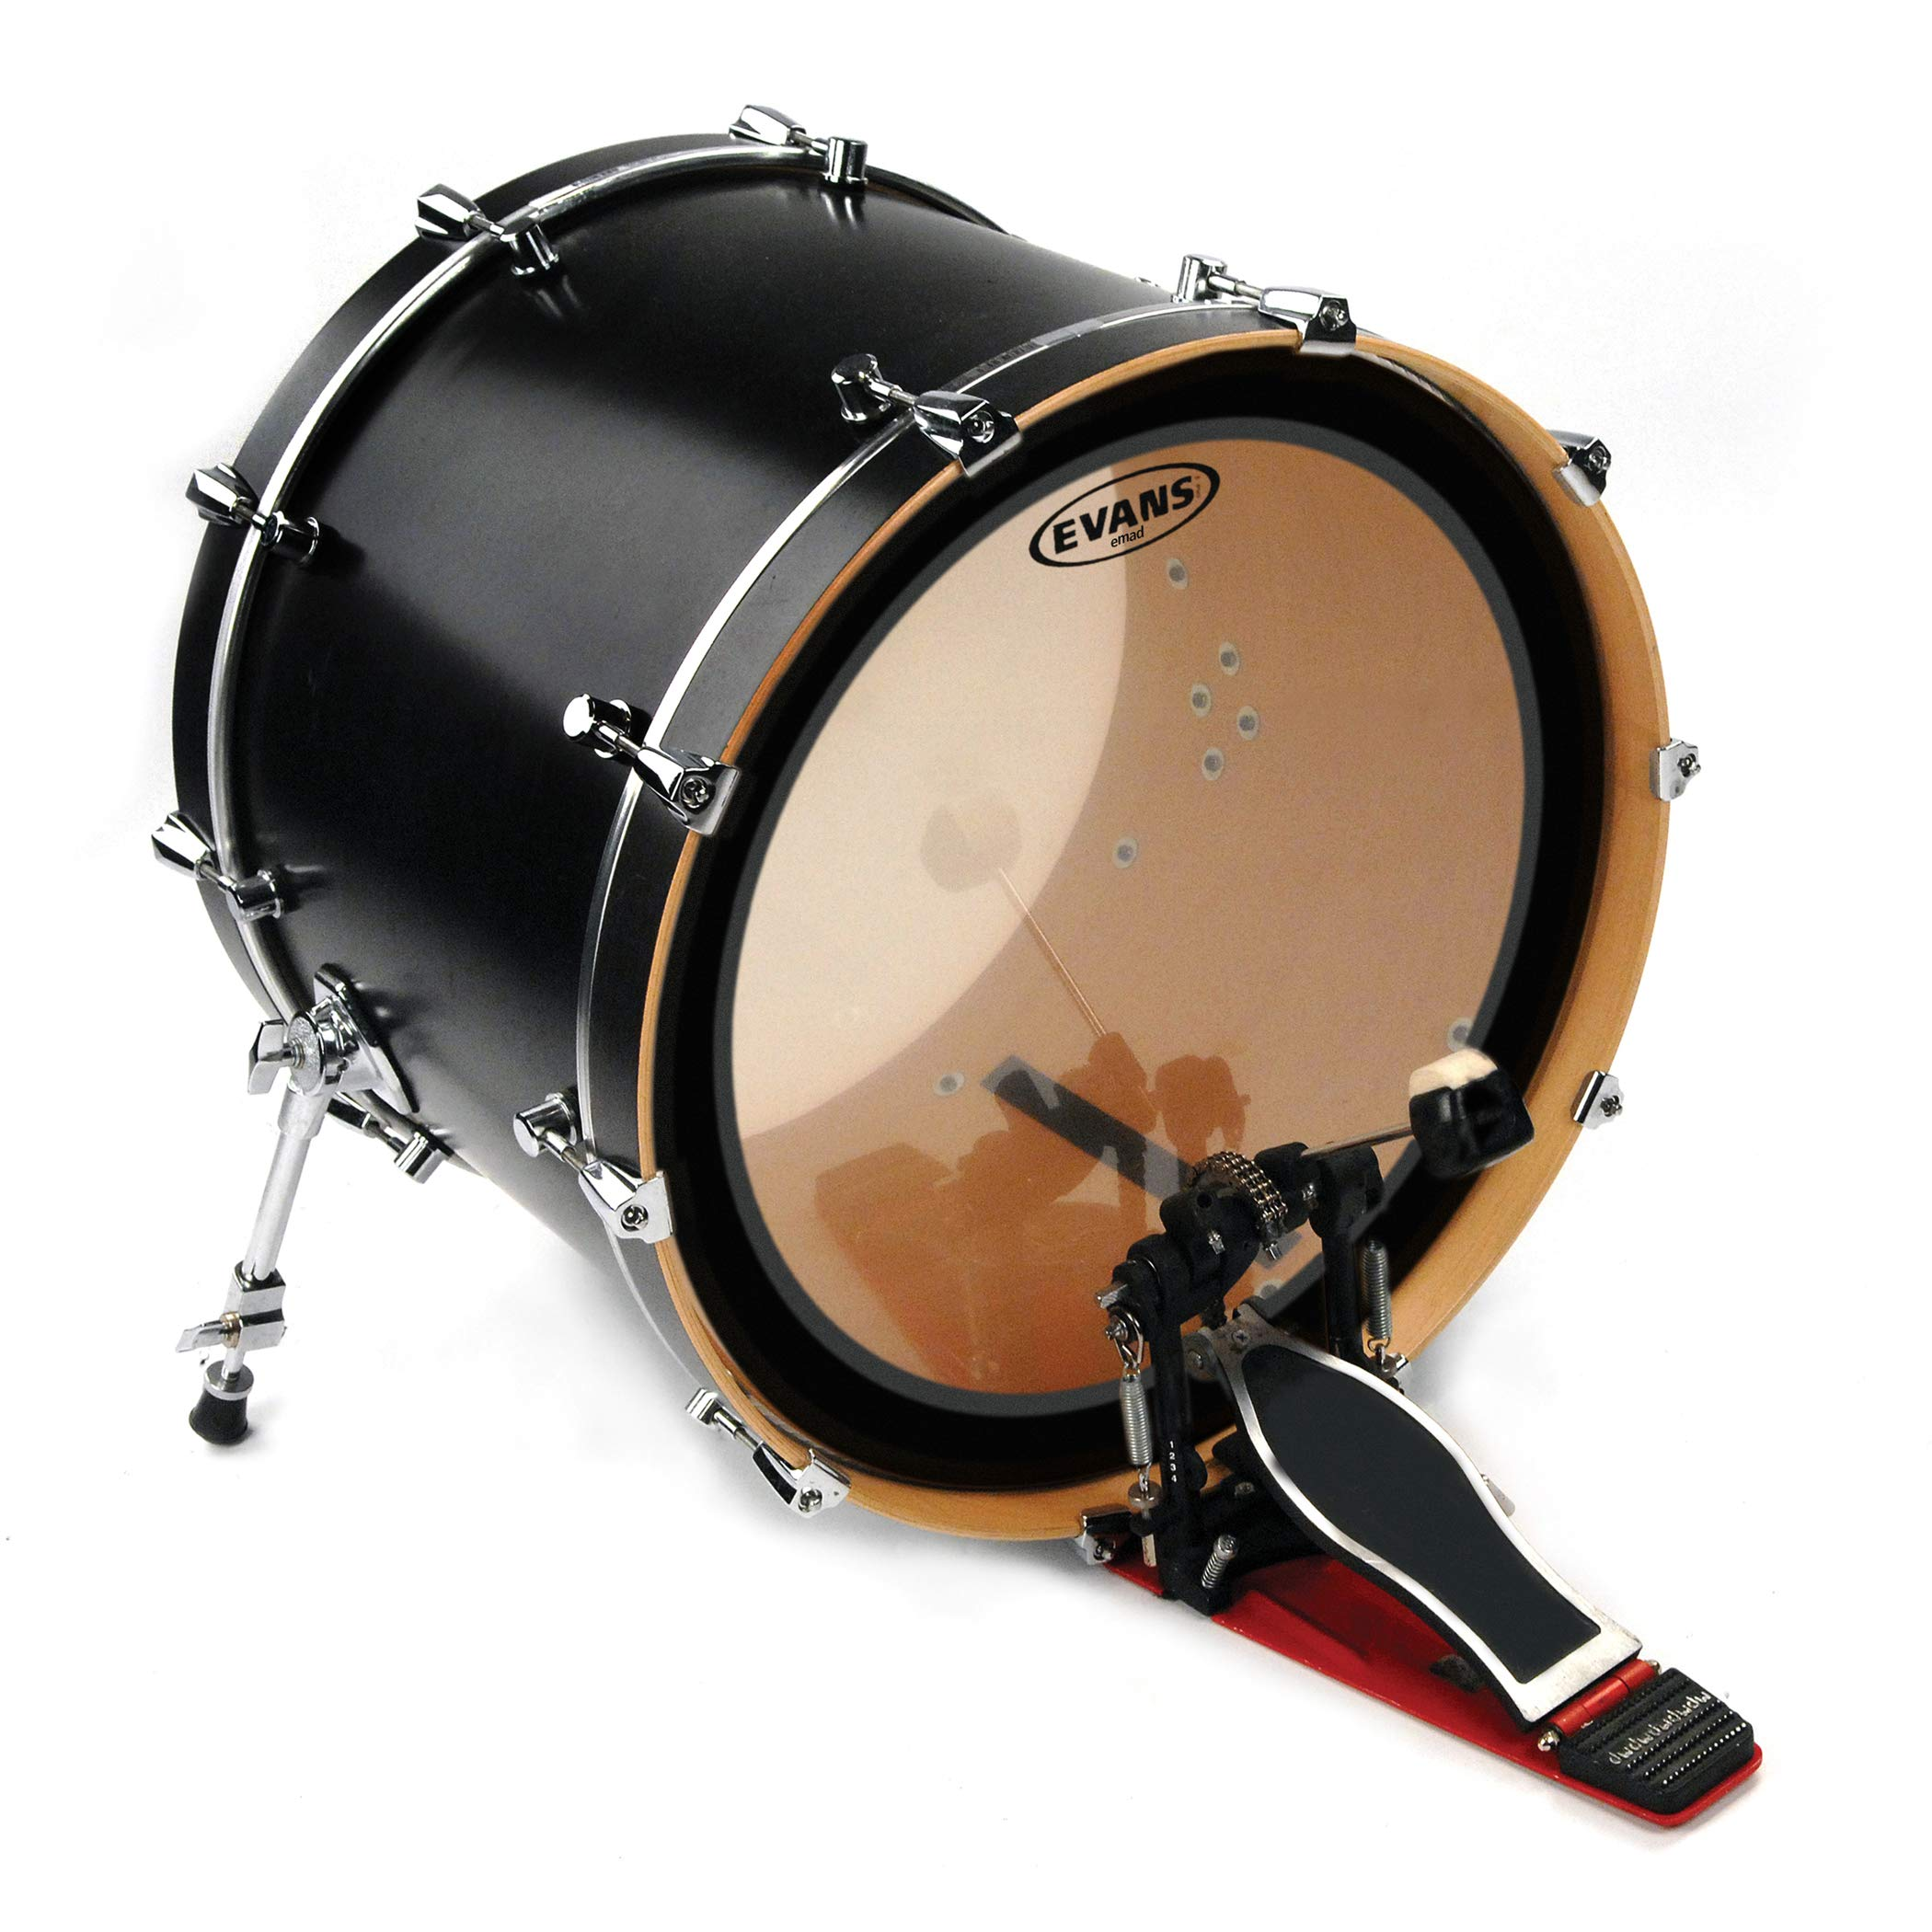 """Evans EMAD2 Clear Bass Drum Head, 20"""" – Externally Mounted Adjustable Damping System Allows Player to Adjust Attack and Focus – 2 Foam Damping Rings for Sound Options - Versatile for All Music Genres"""